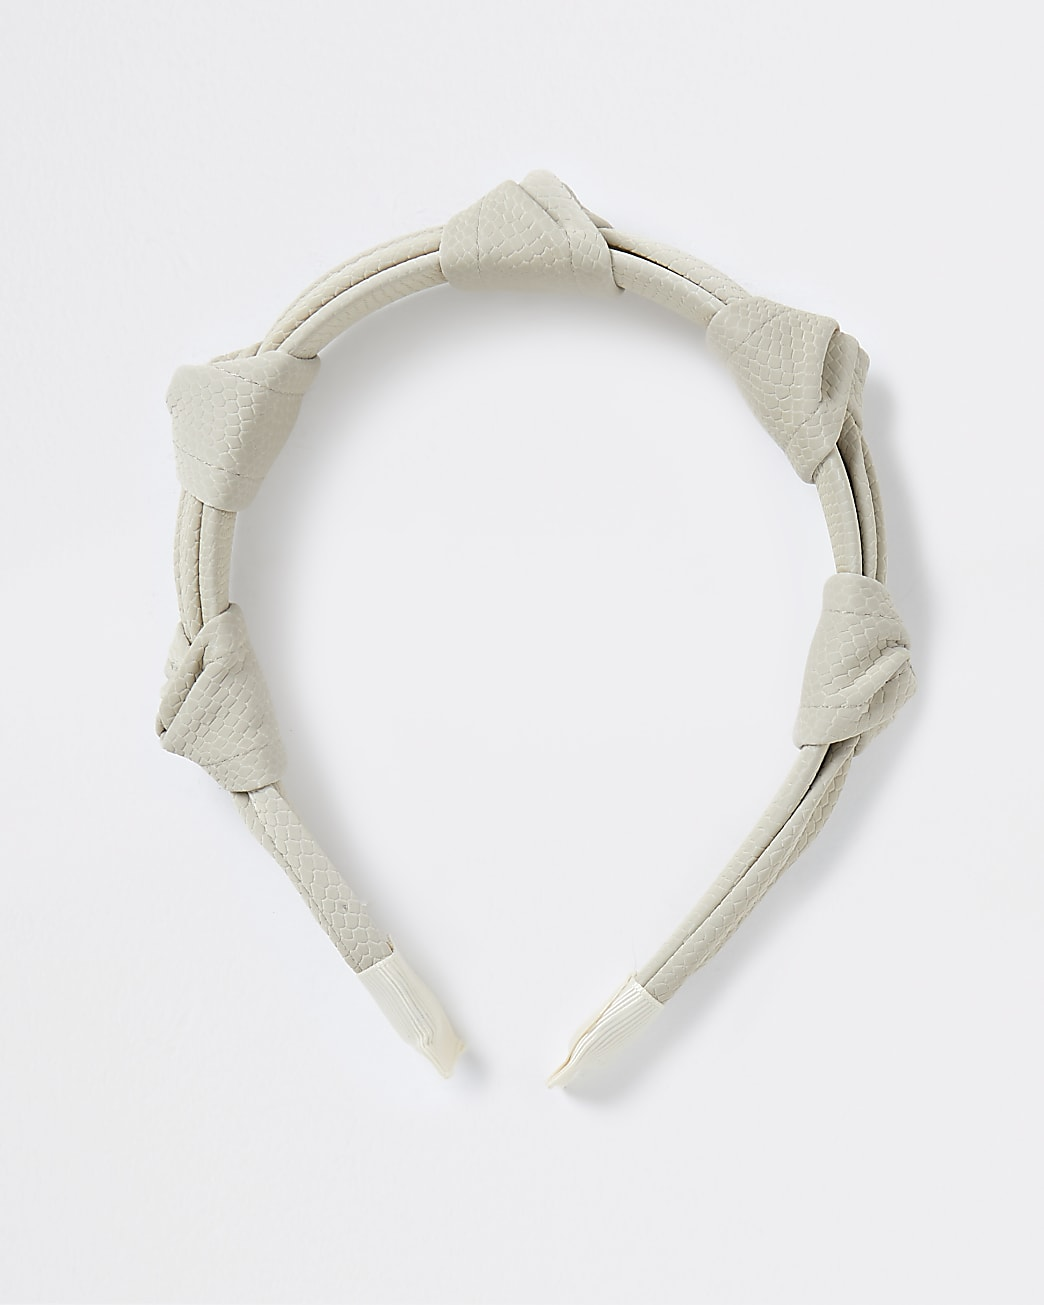 Beige faux leather snake knotted Alice band